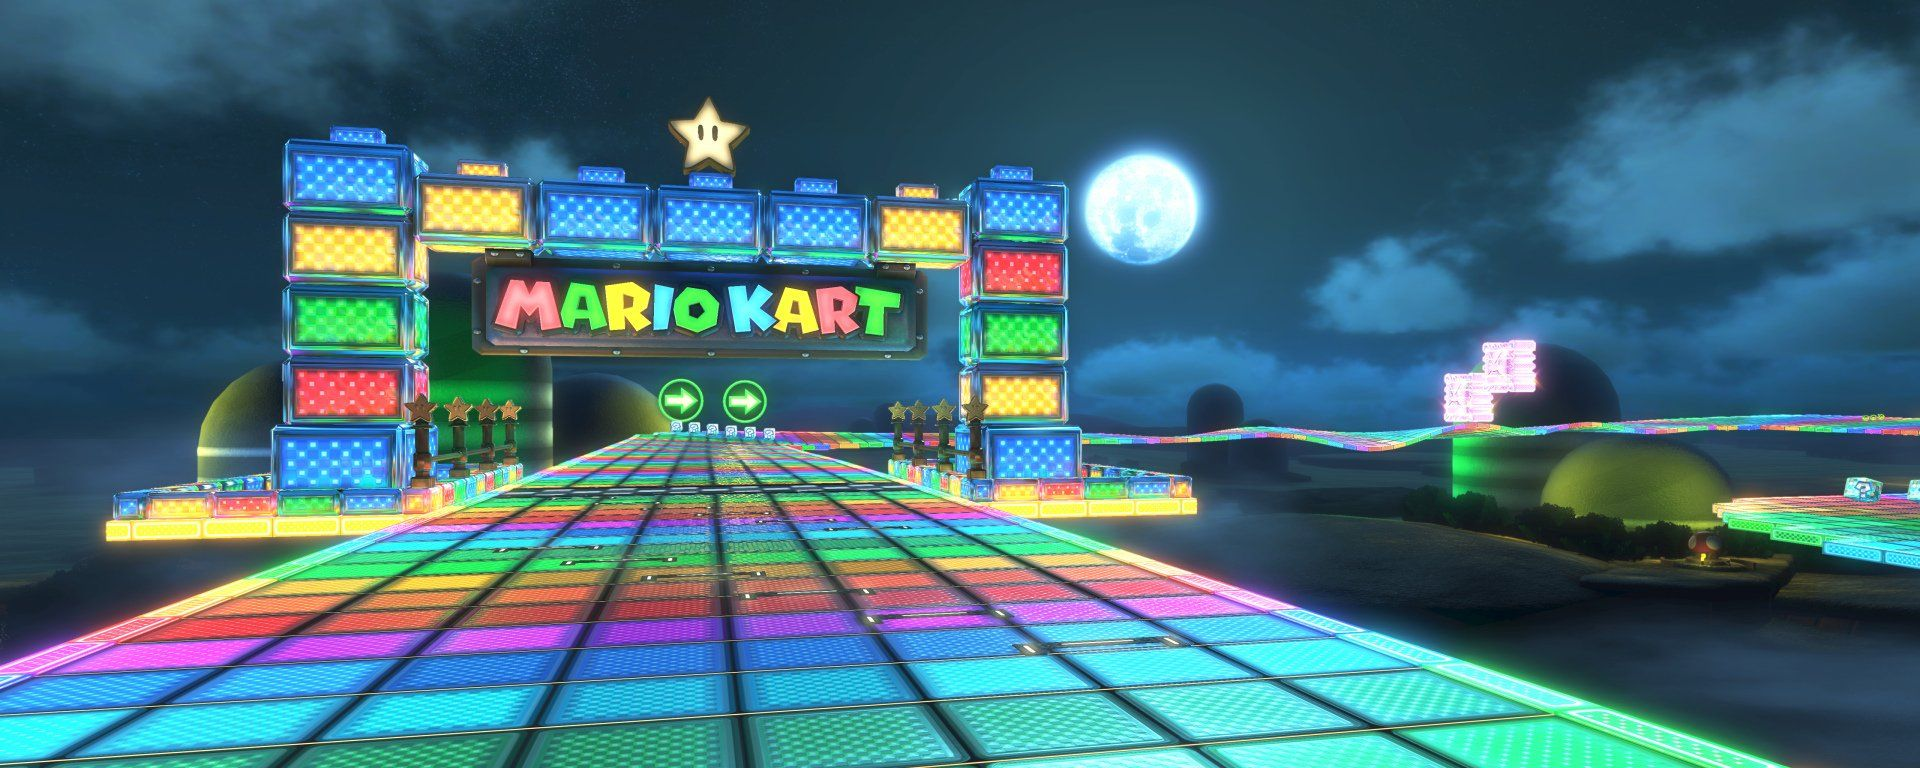 Mario Kart 8 Nintendo Wiiu Mariokart8 Wiiu Nintendowiiu Mariokart Nintendo Carreras Cars Speed Races Race With Images Mario Kart Mario Kart 8 Mario Kart Party